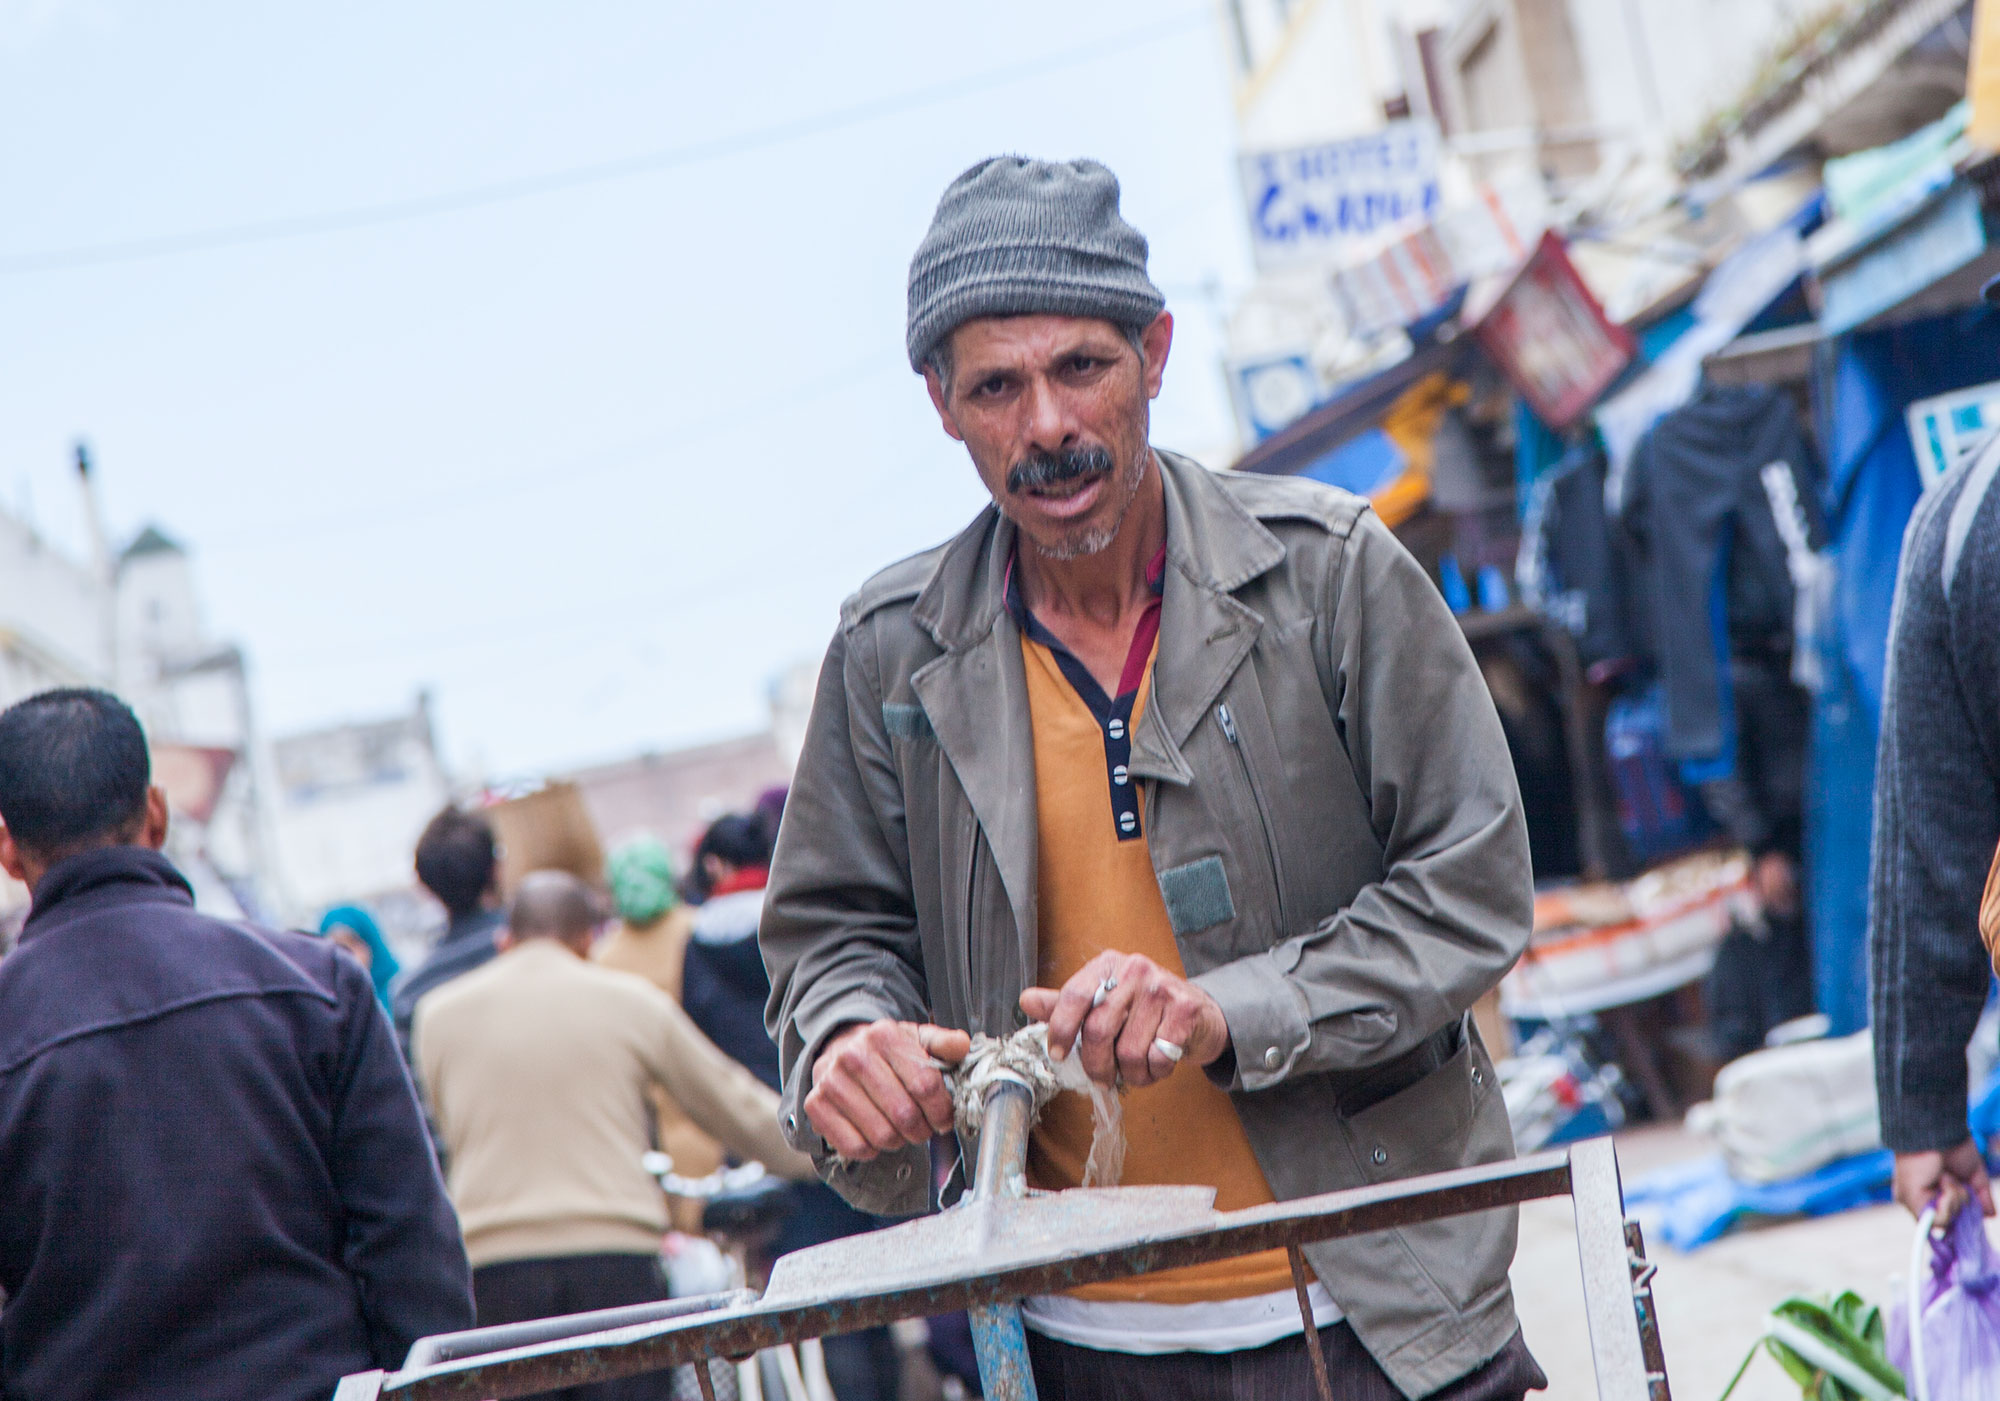 Morocco / Travel Photography